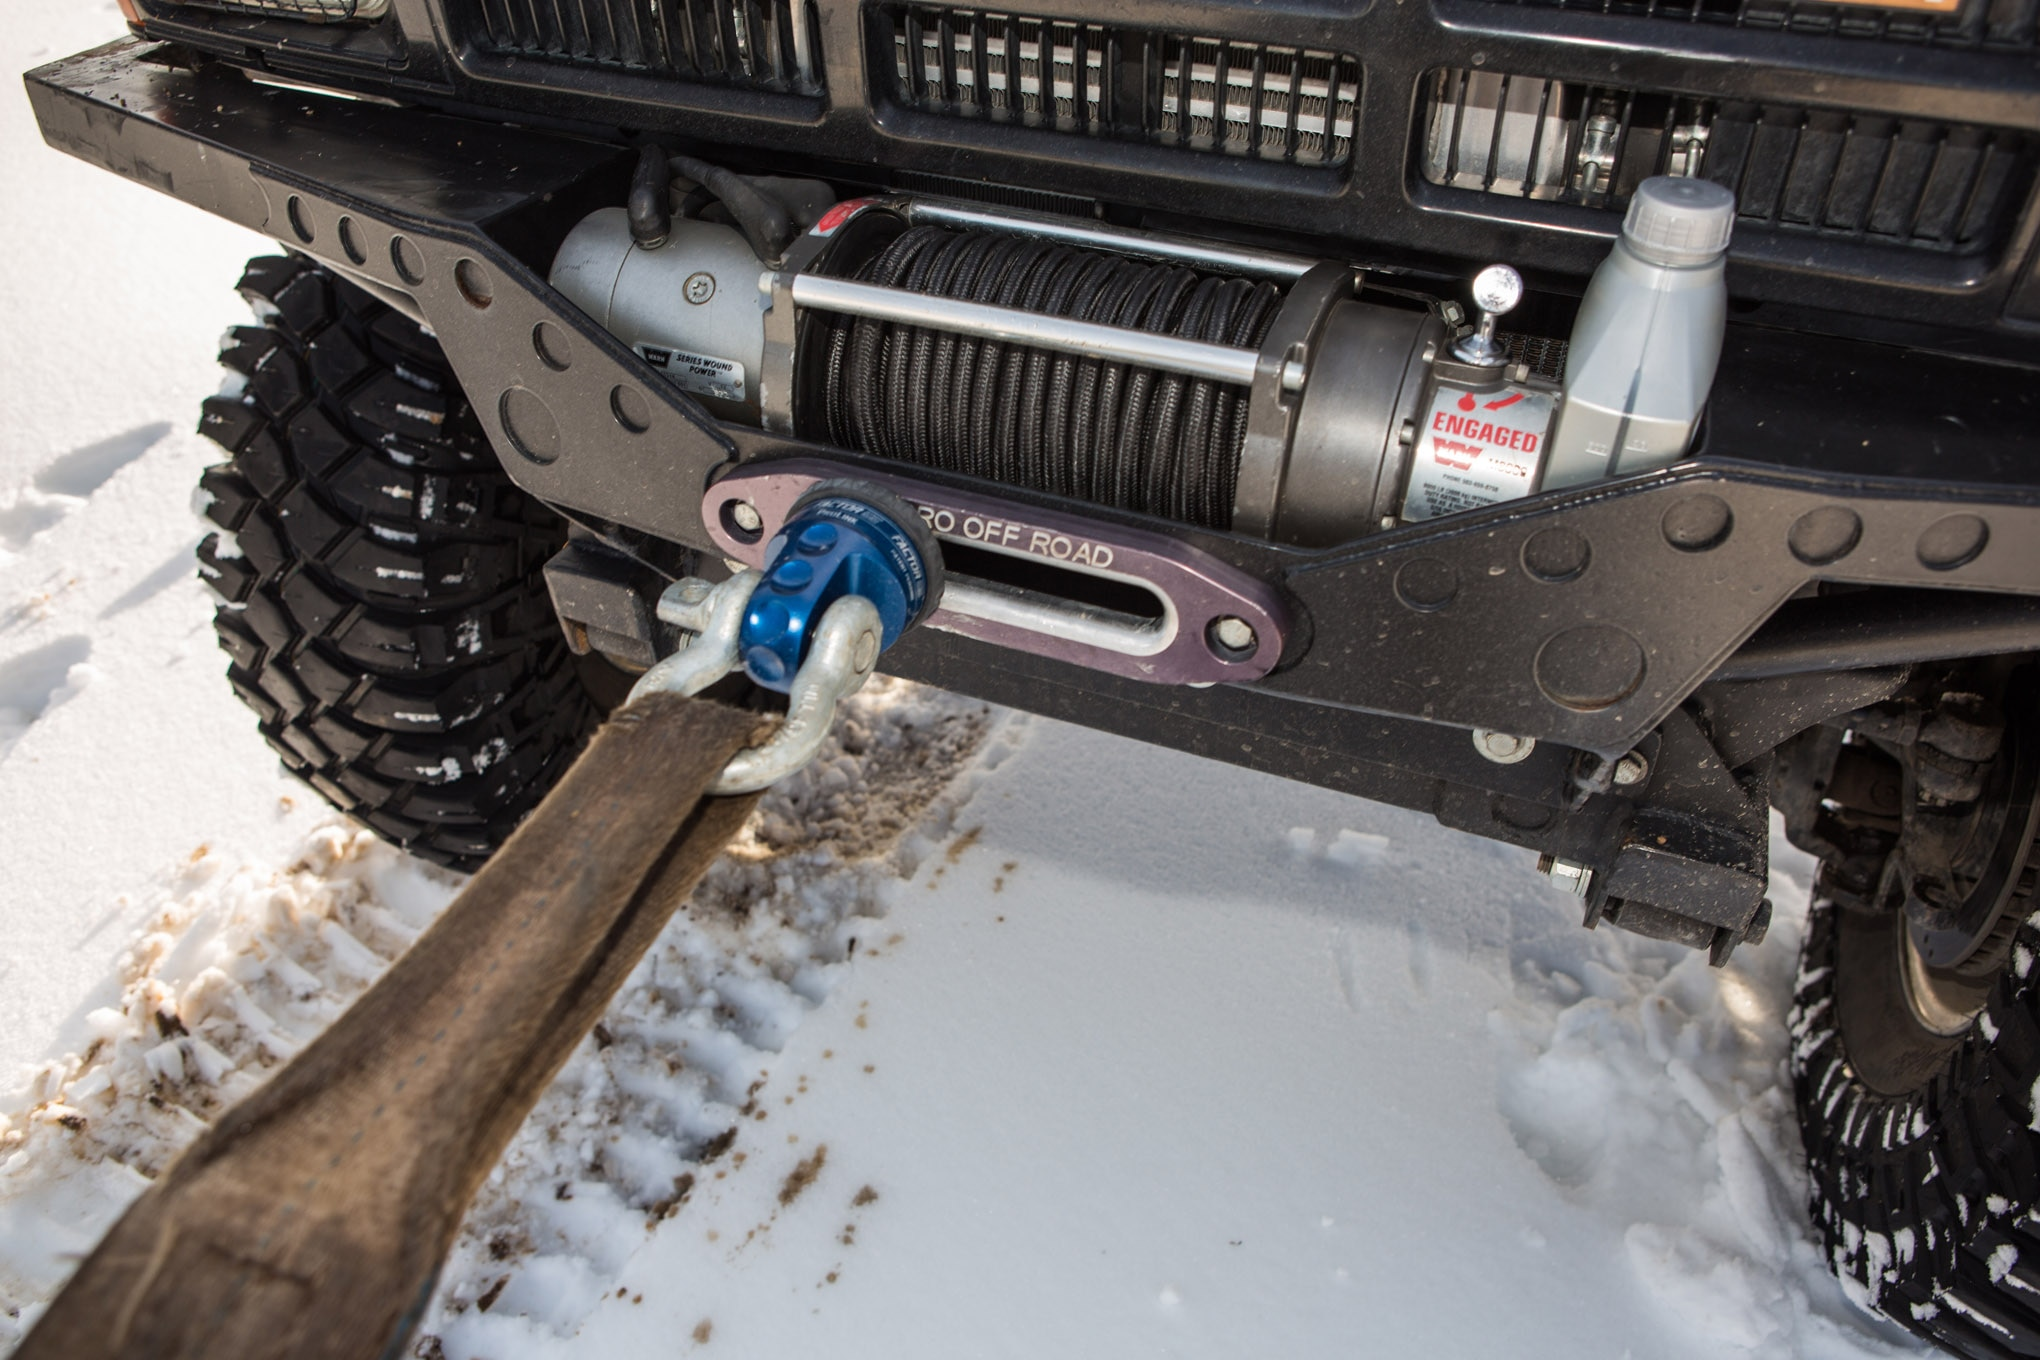 Never pull from your winch during a recovery. Only use sturdy recovery points attached to the frame. This advice is not specific to snow, and not doing it could damage the brake and other internal components in your winch.